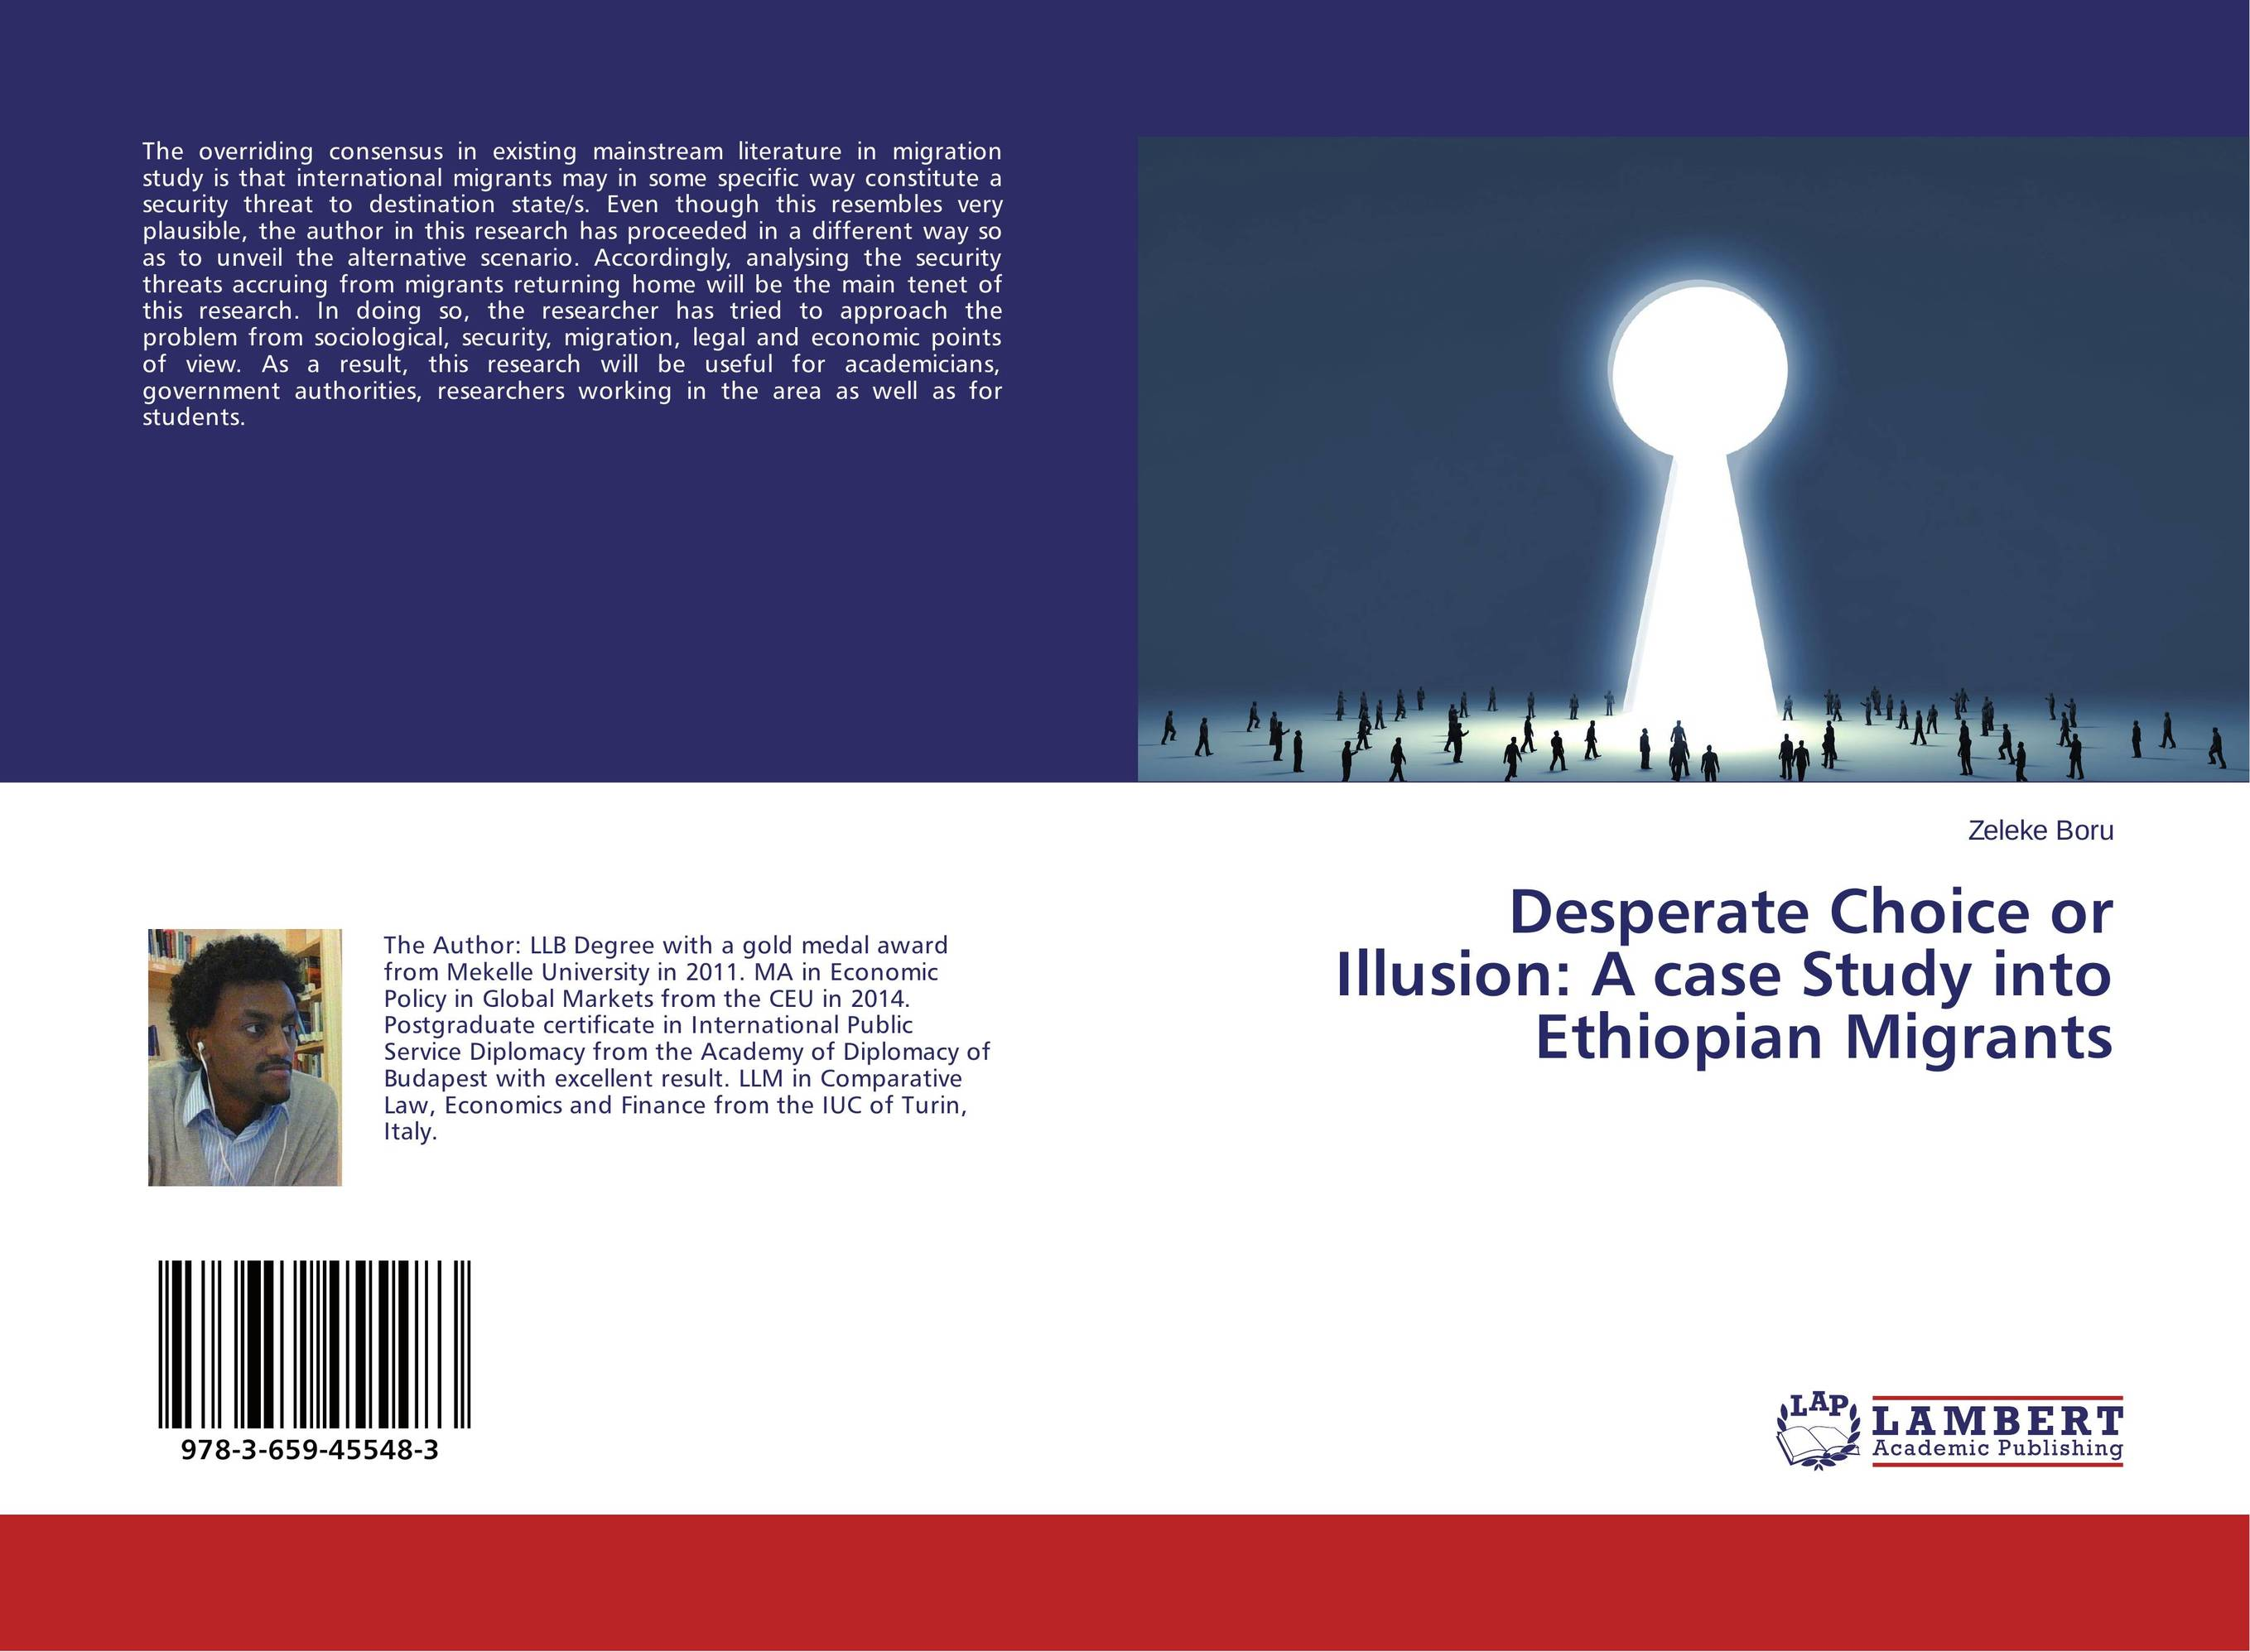 Desperate Choice or Illusion: A case Study into Ethiopian Migrants 16 ports 3g sms modem bulk sms sending 3g modem pool sim5360 new module bulk sms sending device